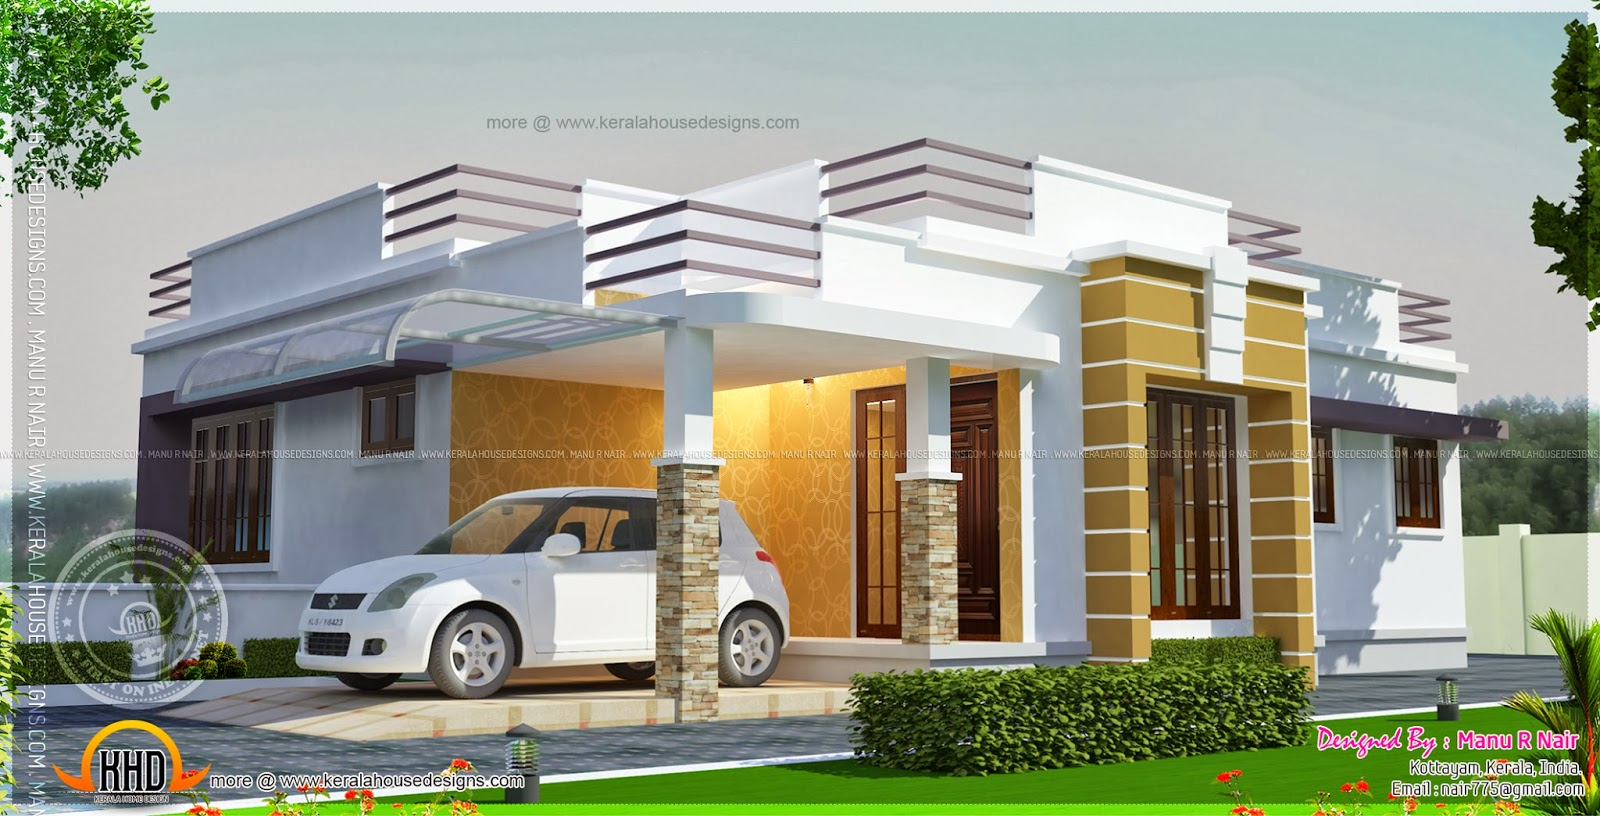 House compound wall design joy studio design gallery best design - Perfect Kottayam Home Design L With Kerala Style Compound Wall Pictures